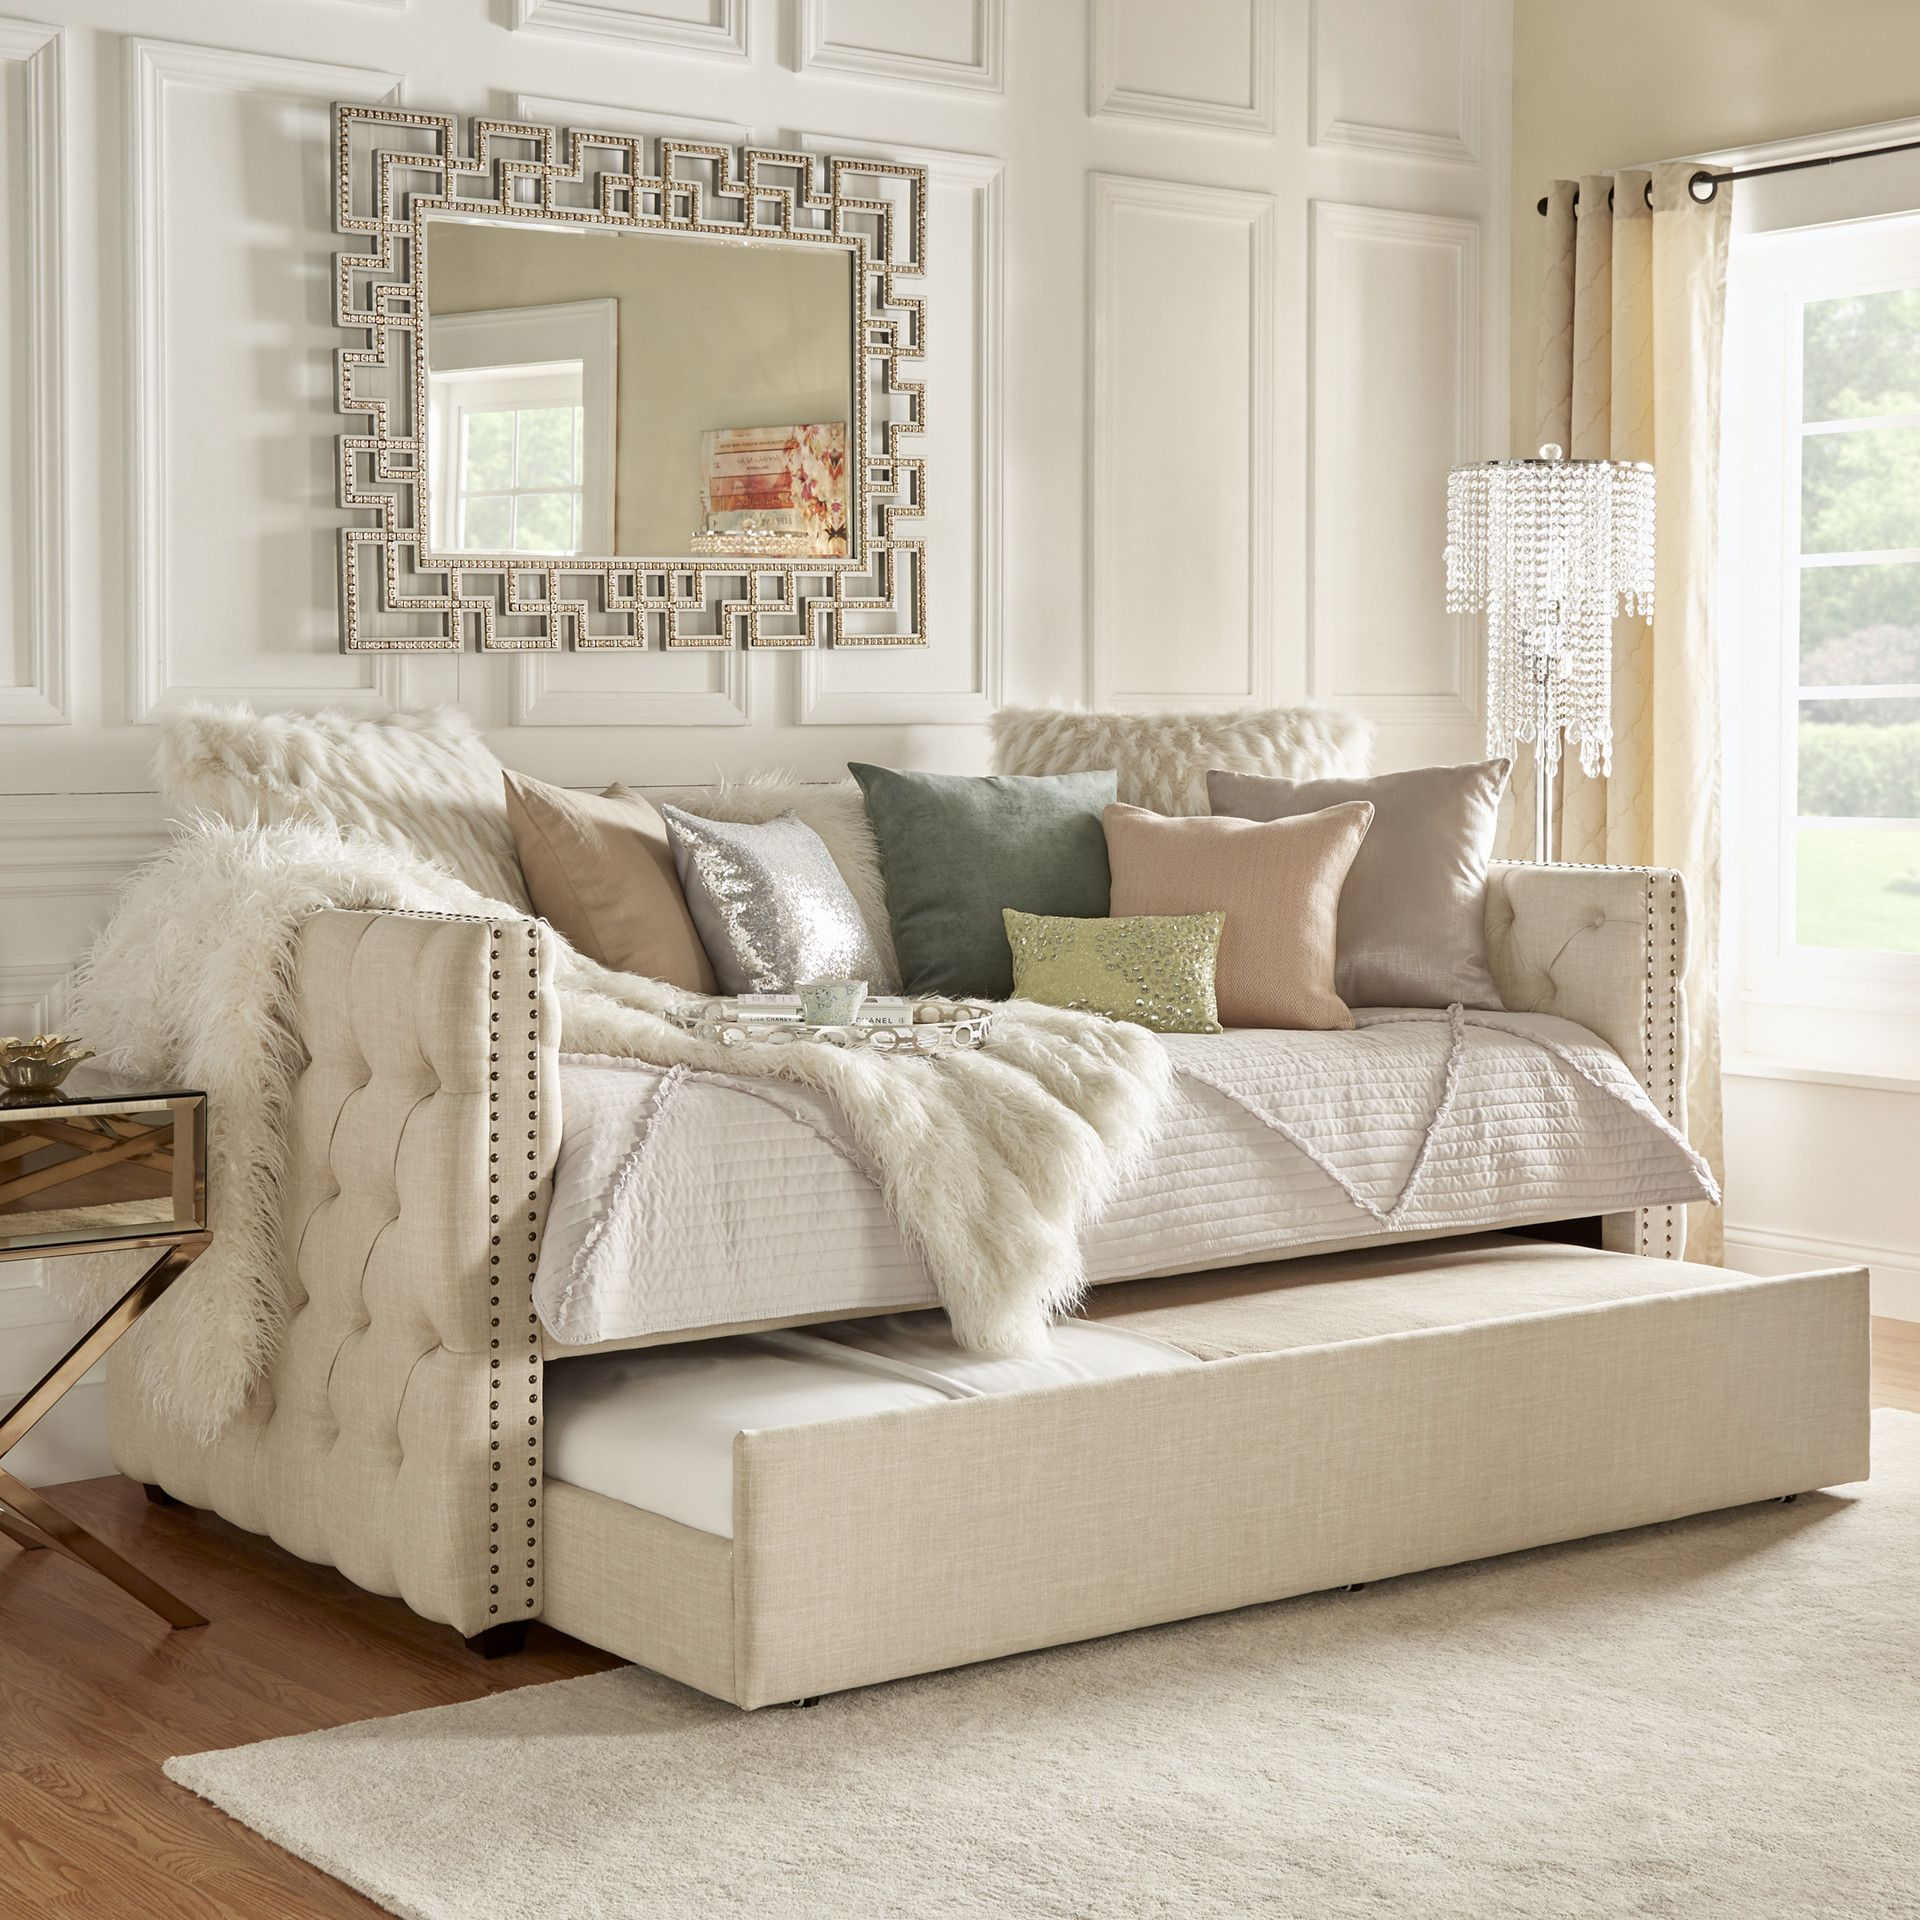 office guest room ideas stuff. House Of Hampton Glenroy Daybed With Trundle Office Guest Room Ideas Stuff